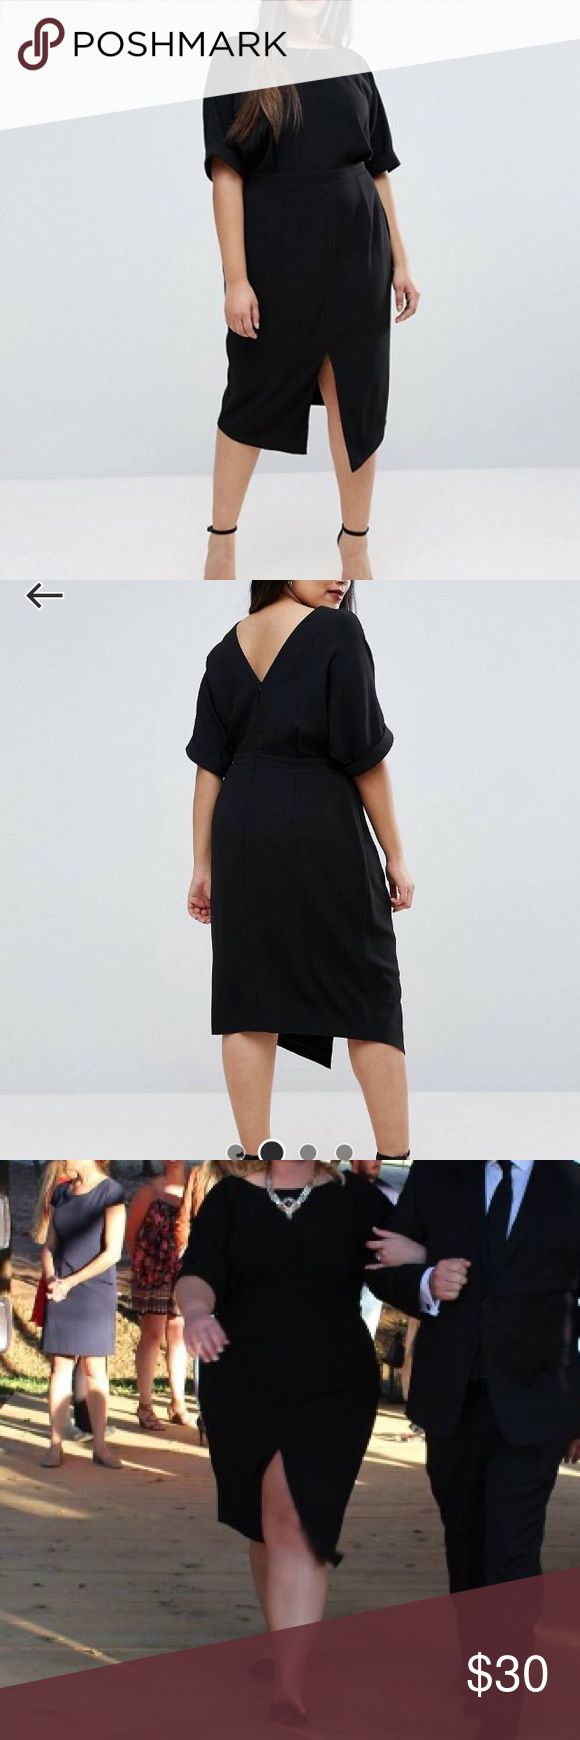 Black Midi ASOS Curve Wiggle Dress with Front Slit Black Midi ASOS Curve Wiggle Dress with Front Slit ASOS Curve Dresses Midi